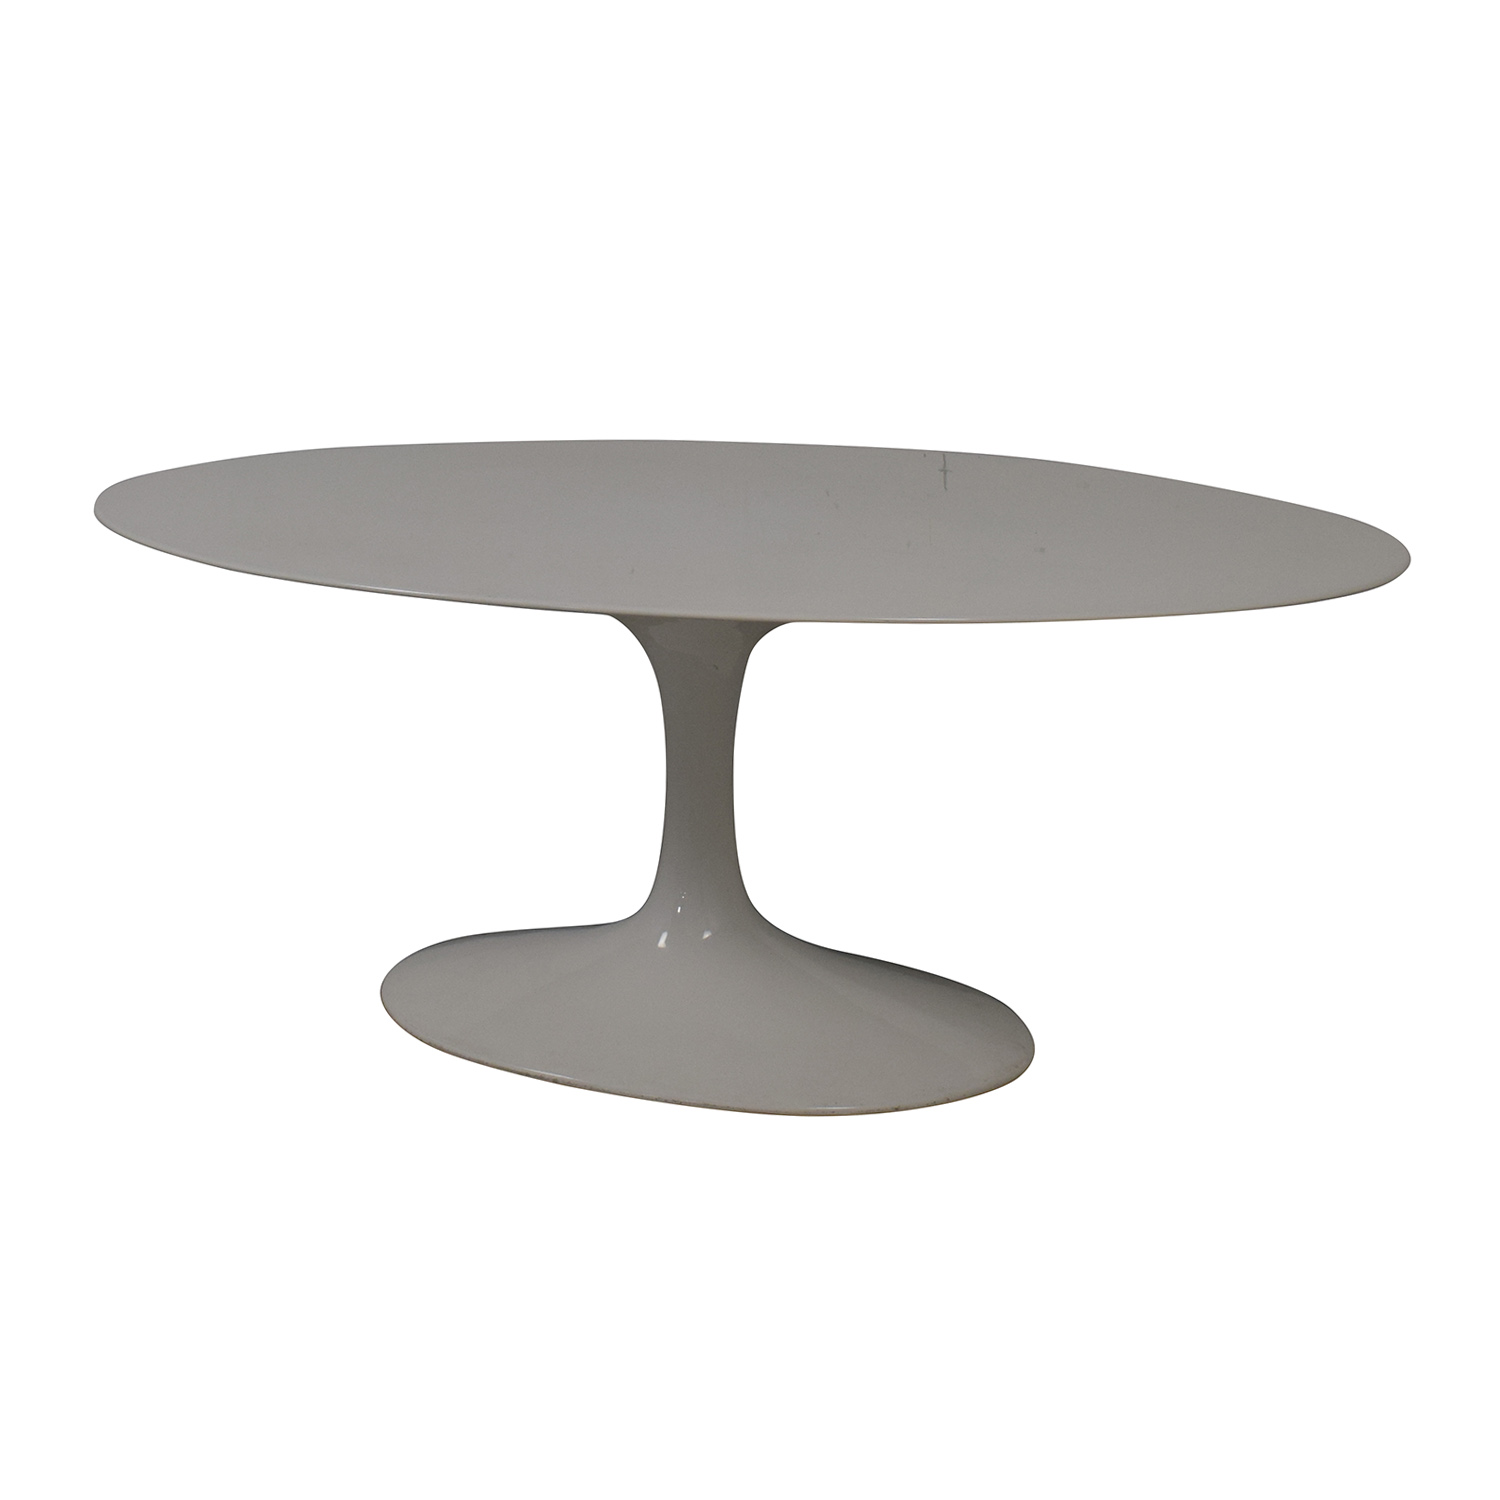 Replica Saarinen-Style Dining Table price